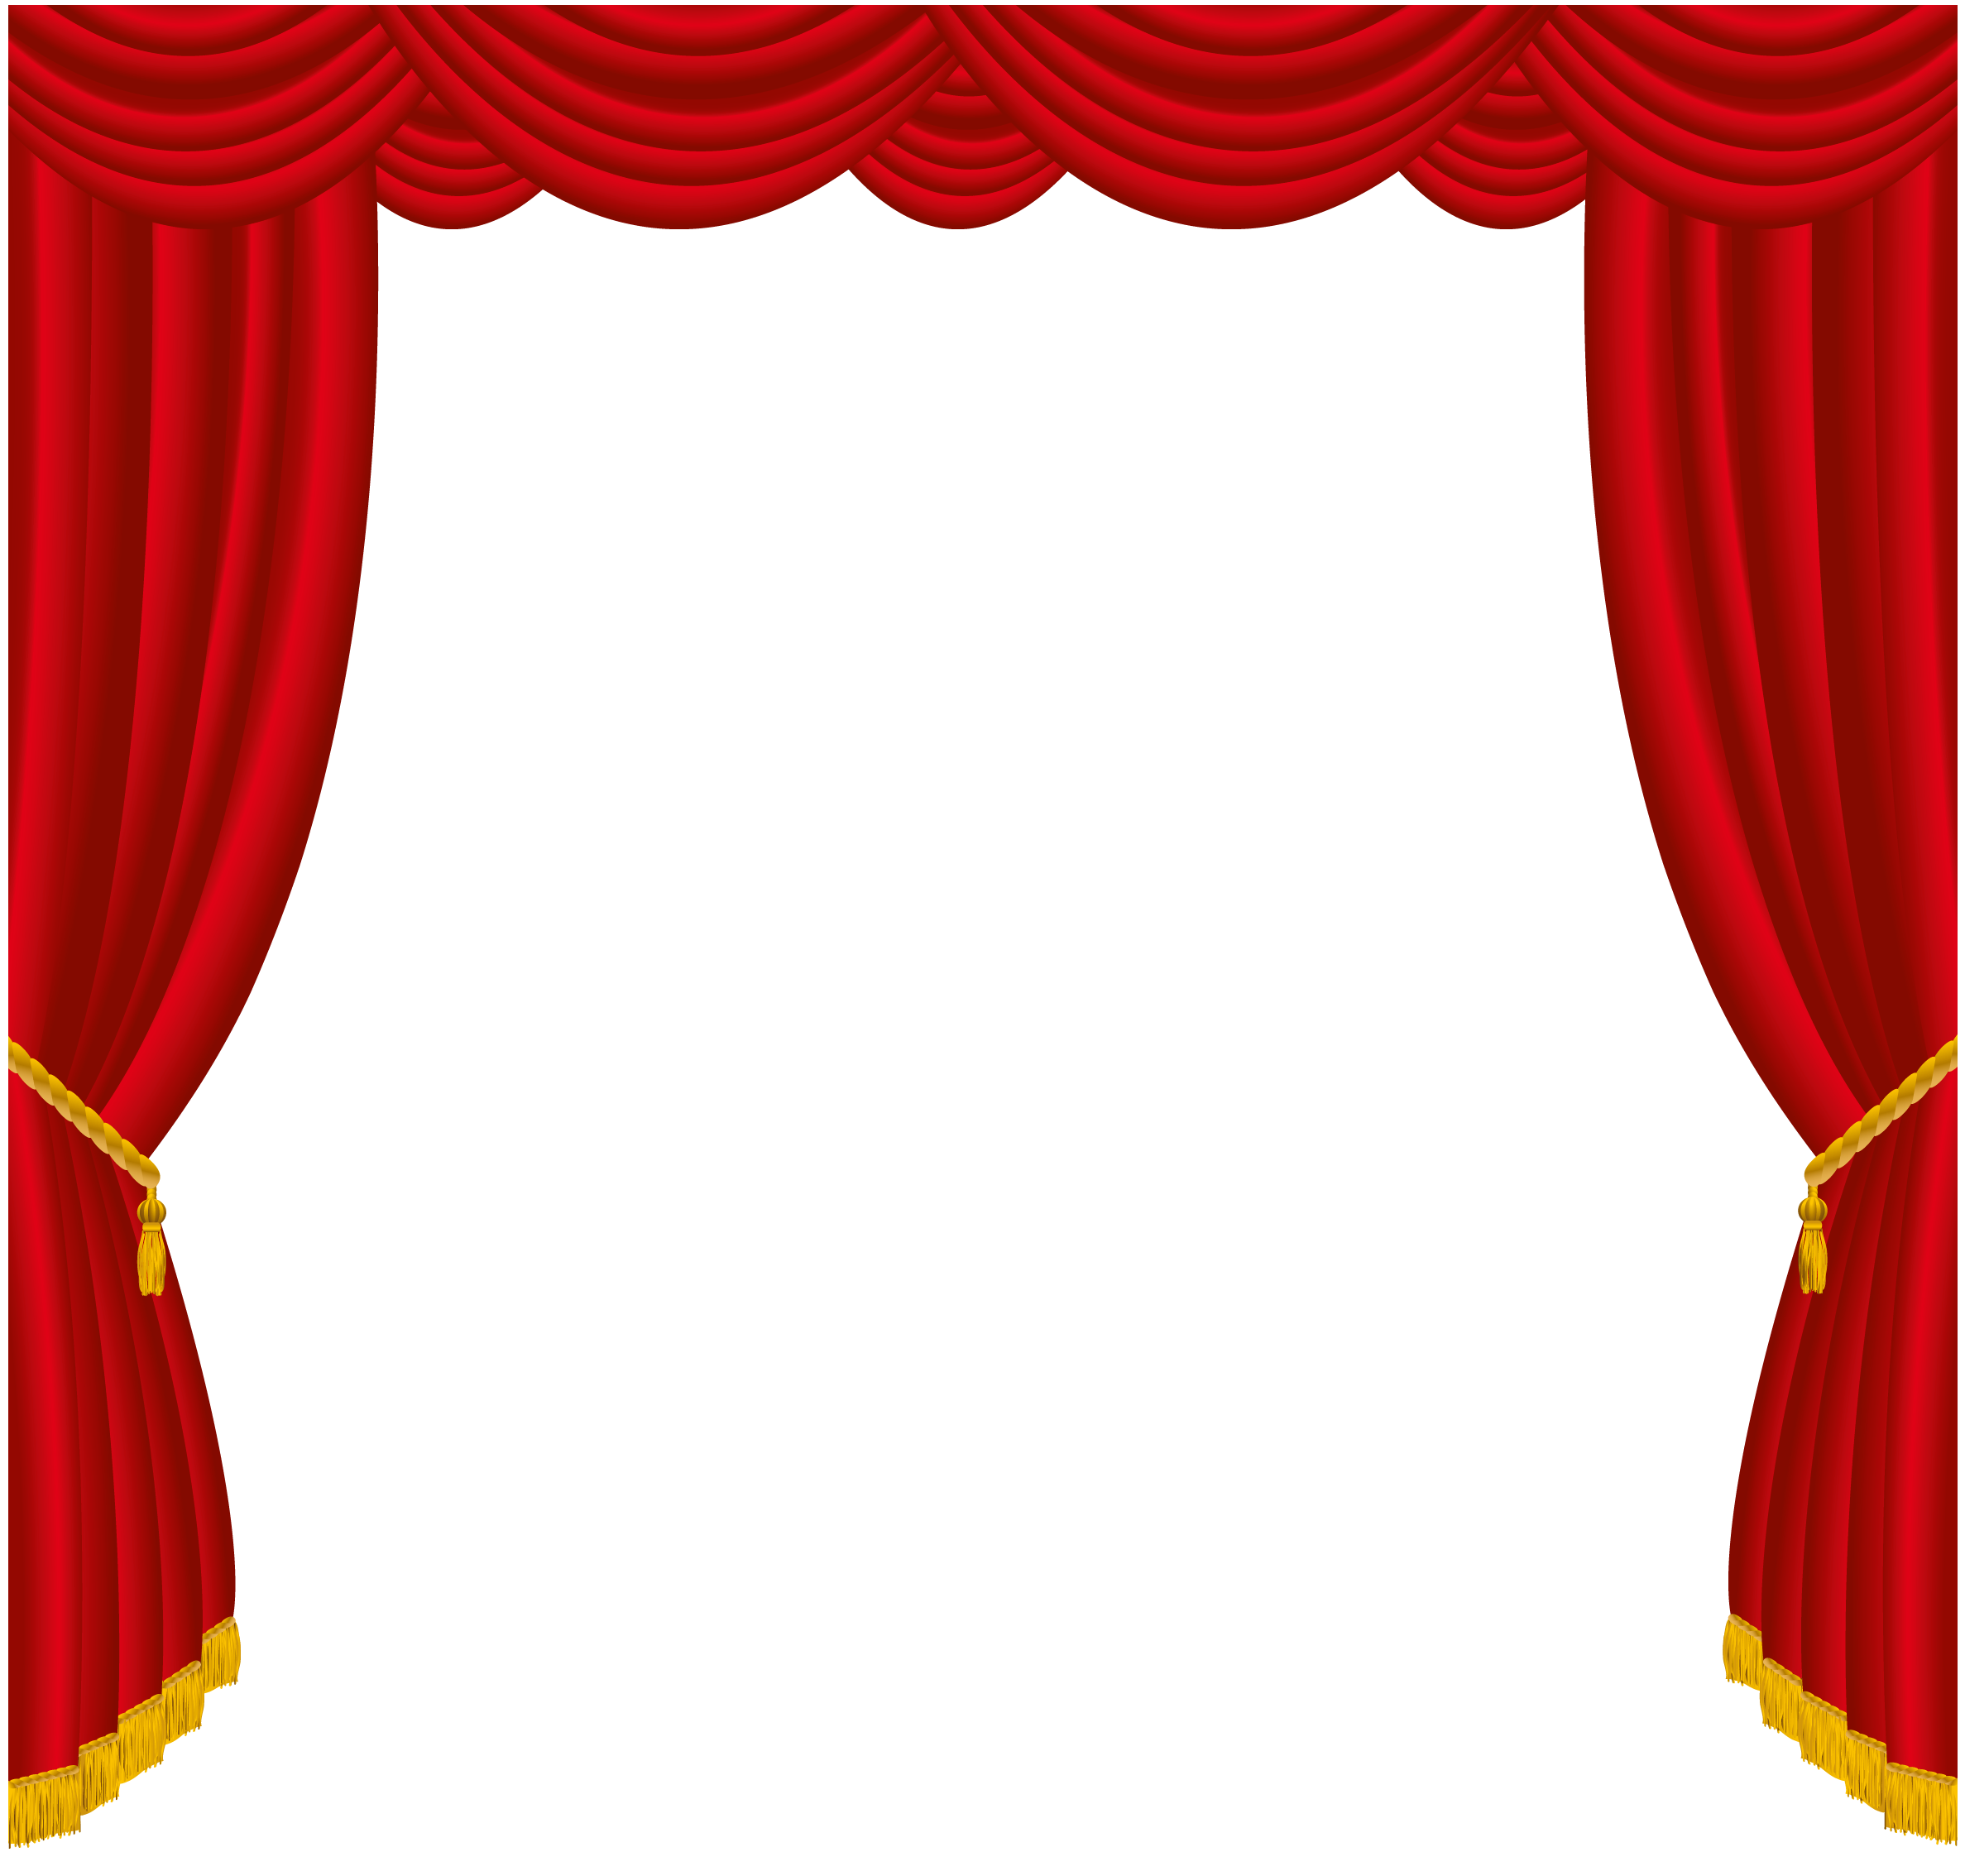 hight resolution of stage curtains red curtains paper curtain clipart gallery frame background background